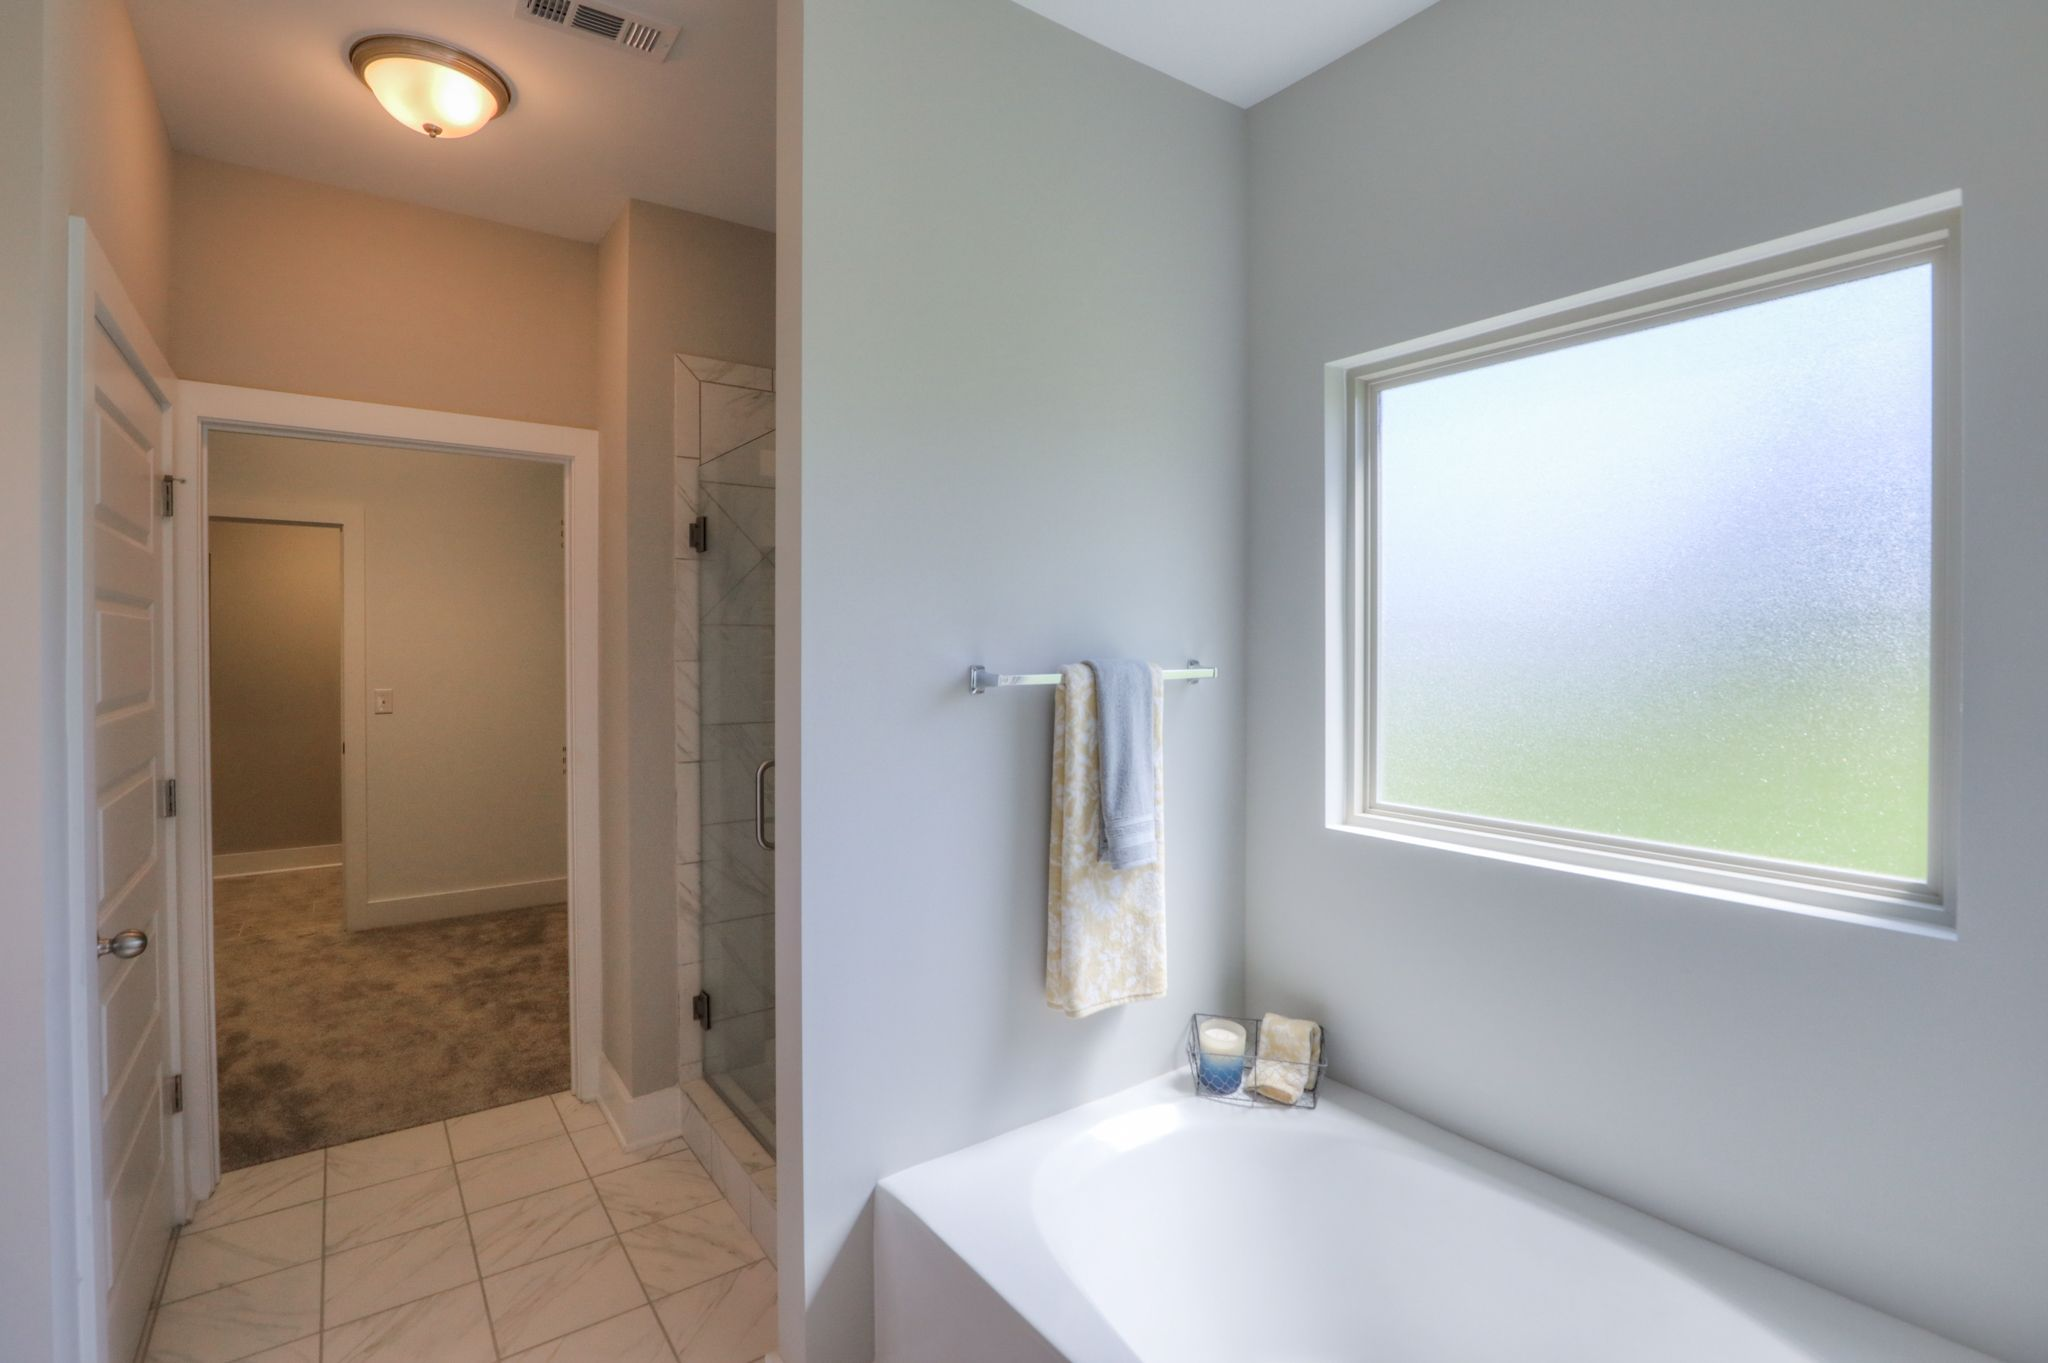 Bathroom featured in The Lexington By Goodall Homes in Nashville, TN